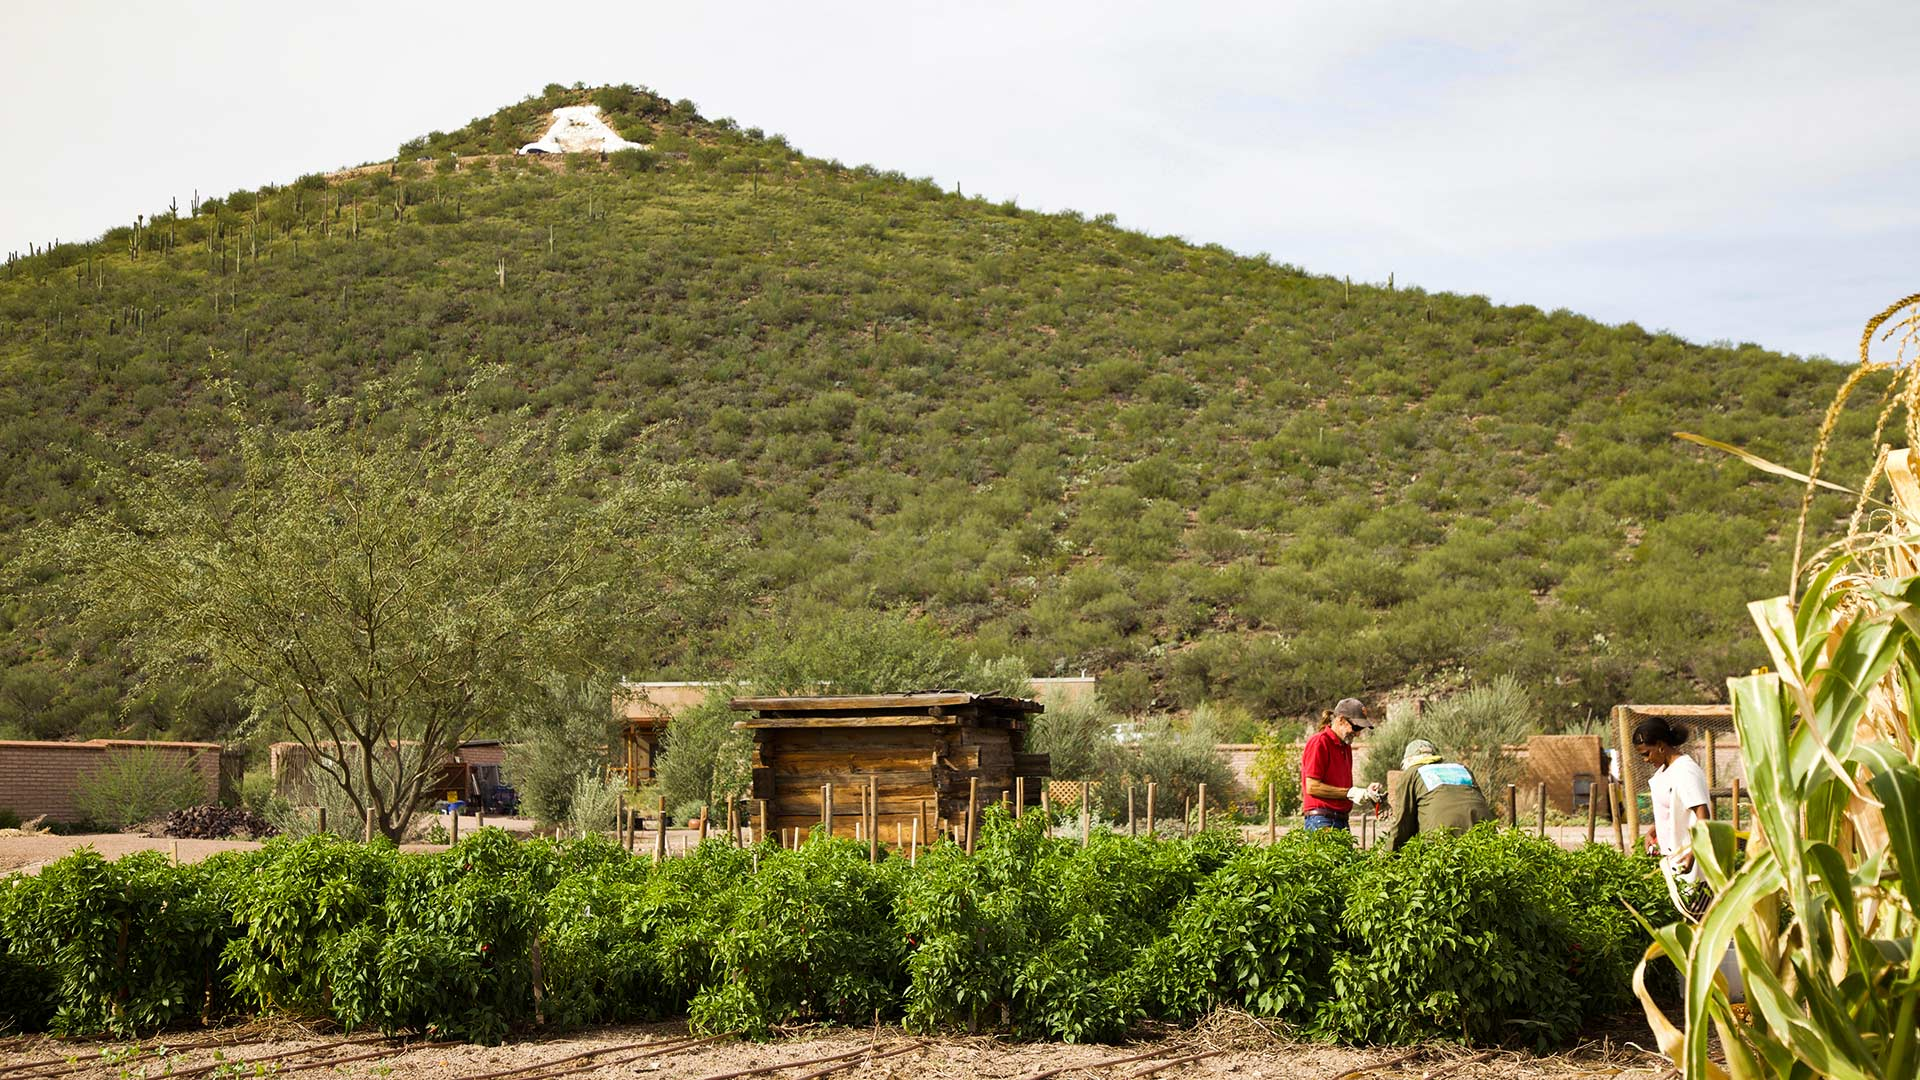 Volunteers at work in the Mission Garden, at the base of Sentinel Peak, November 2018.